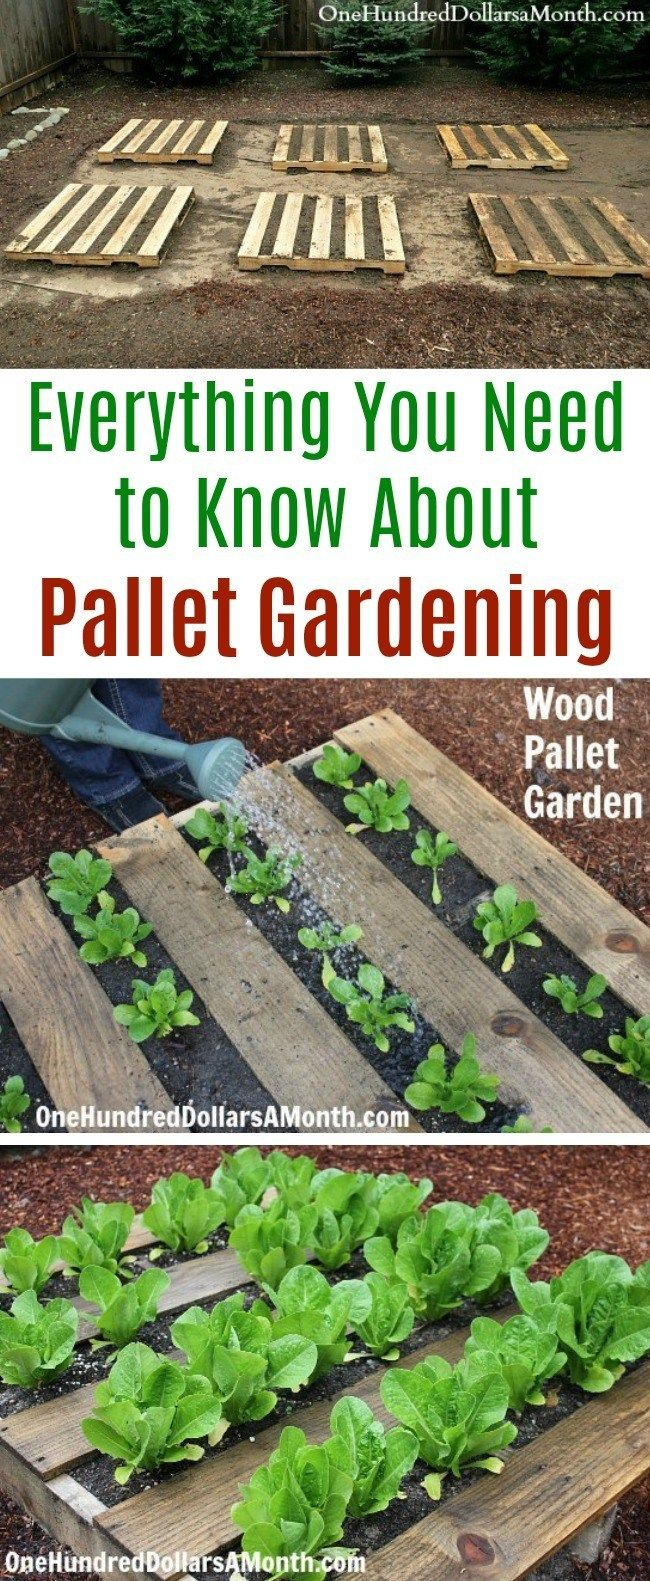 Everything You Need to Know About Pallet Gardening - One Hundred Dollars a Month